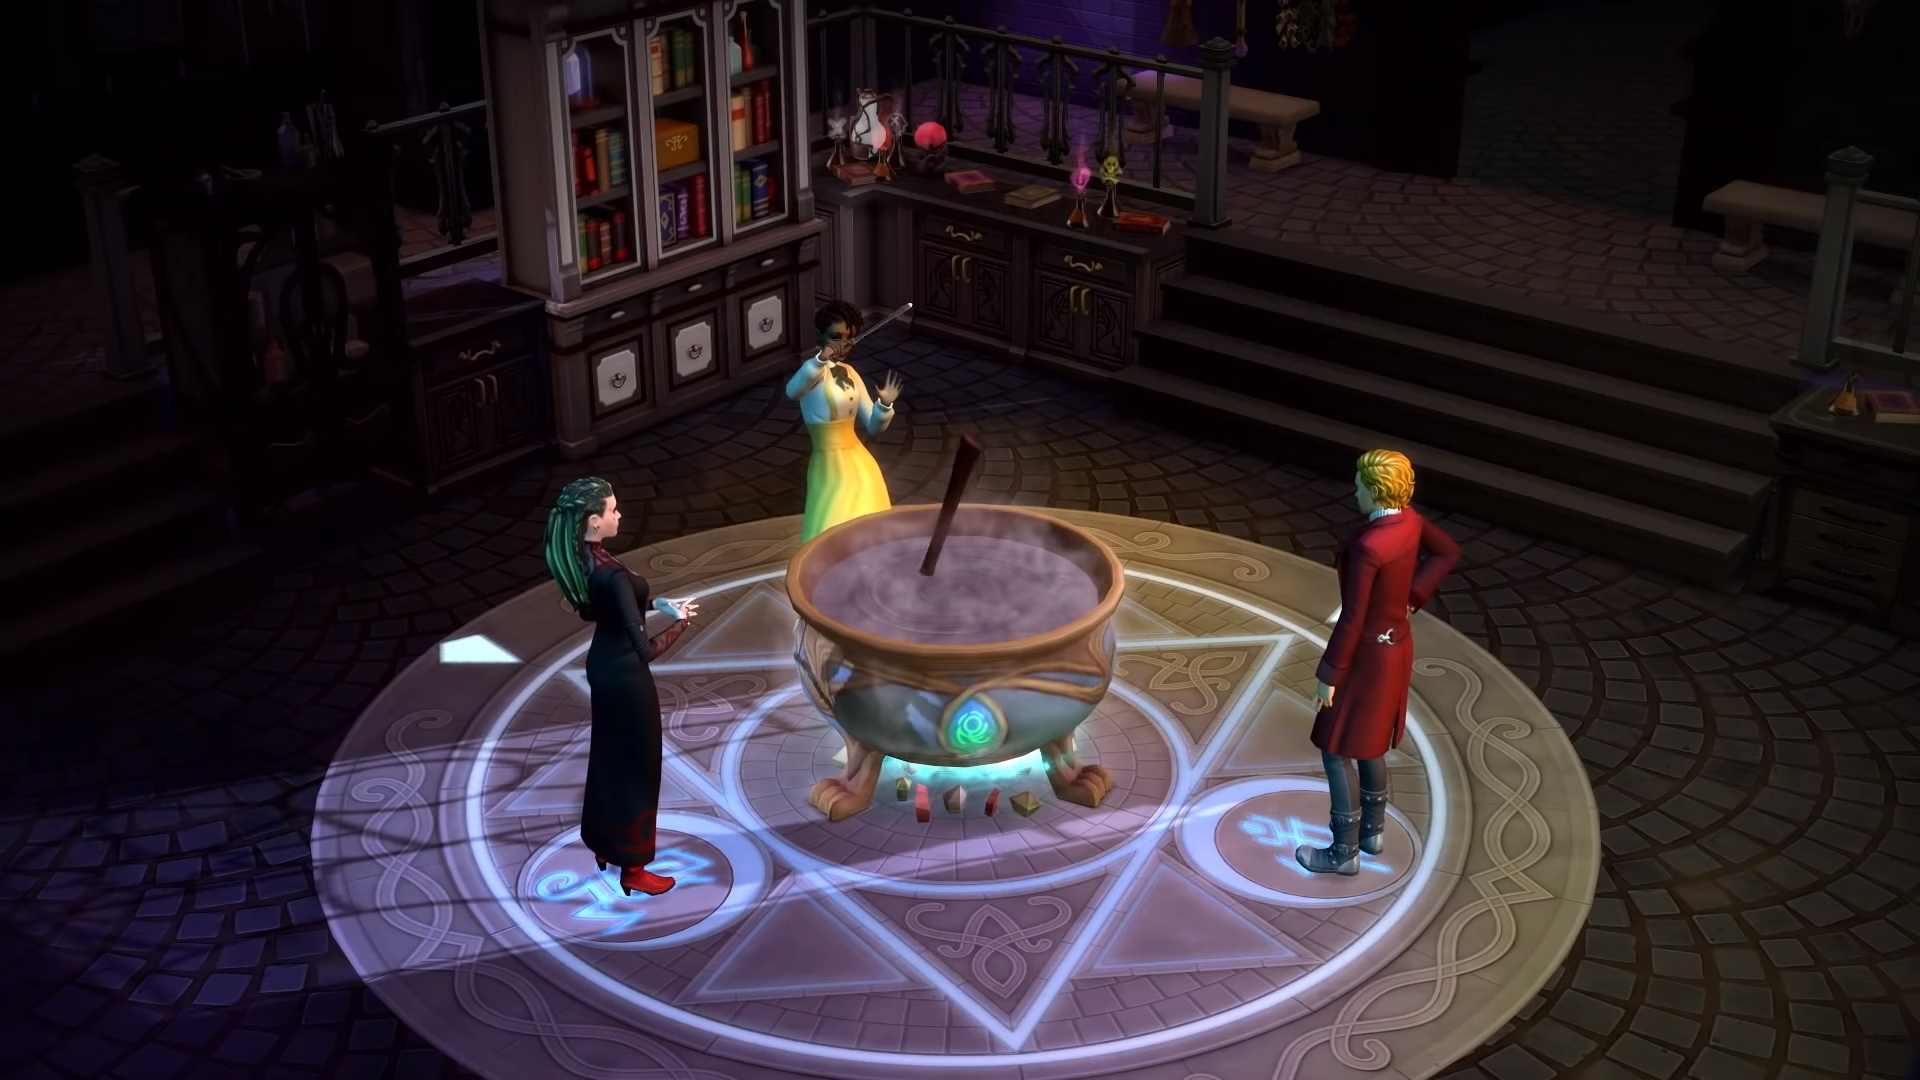 The Sims 4: Realm of Magic is like Harry Potter meets The CW